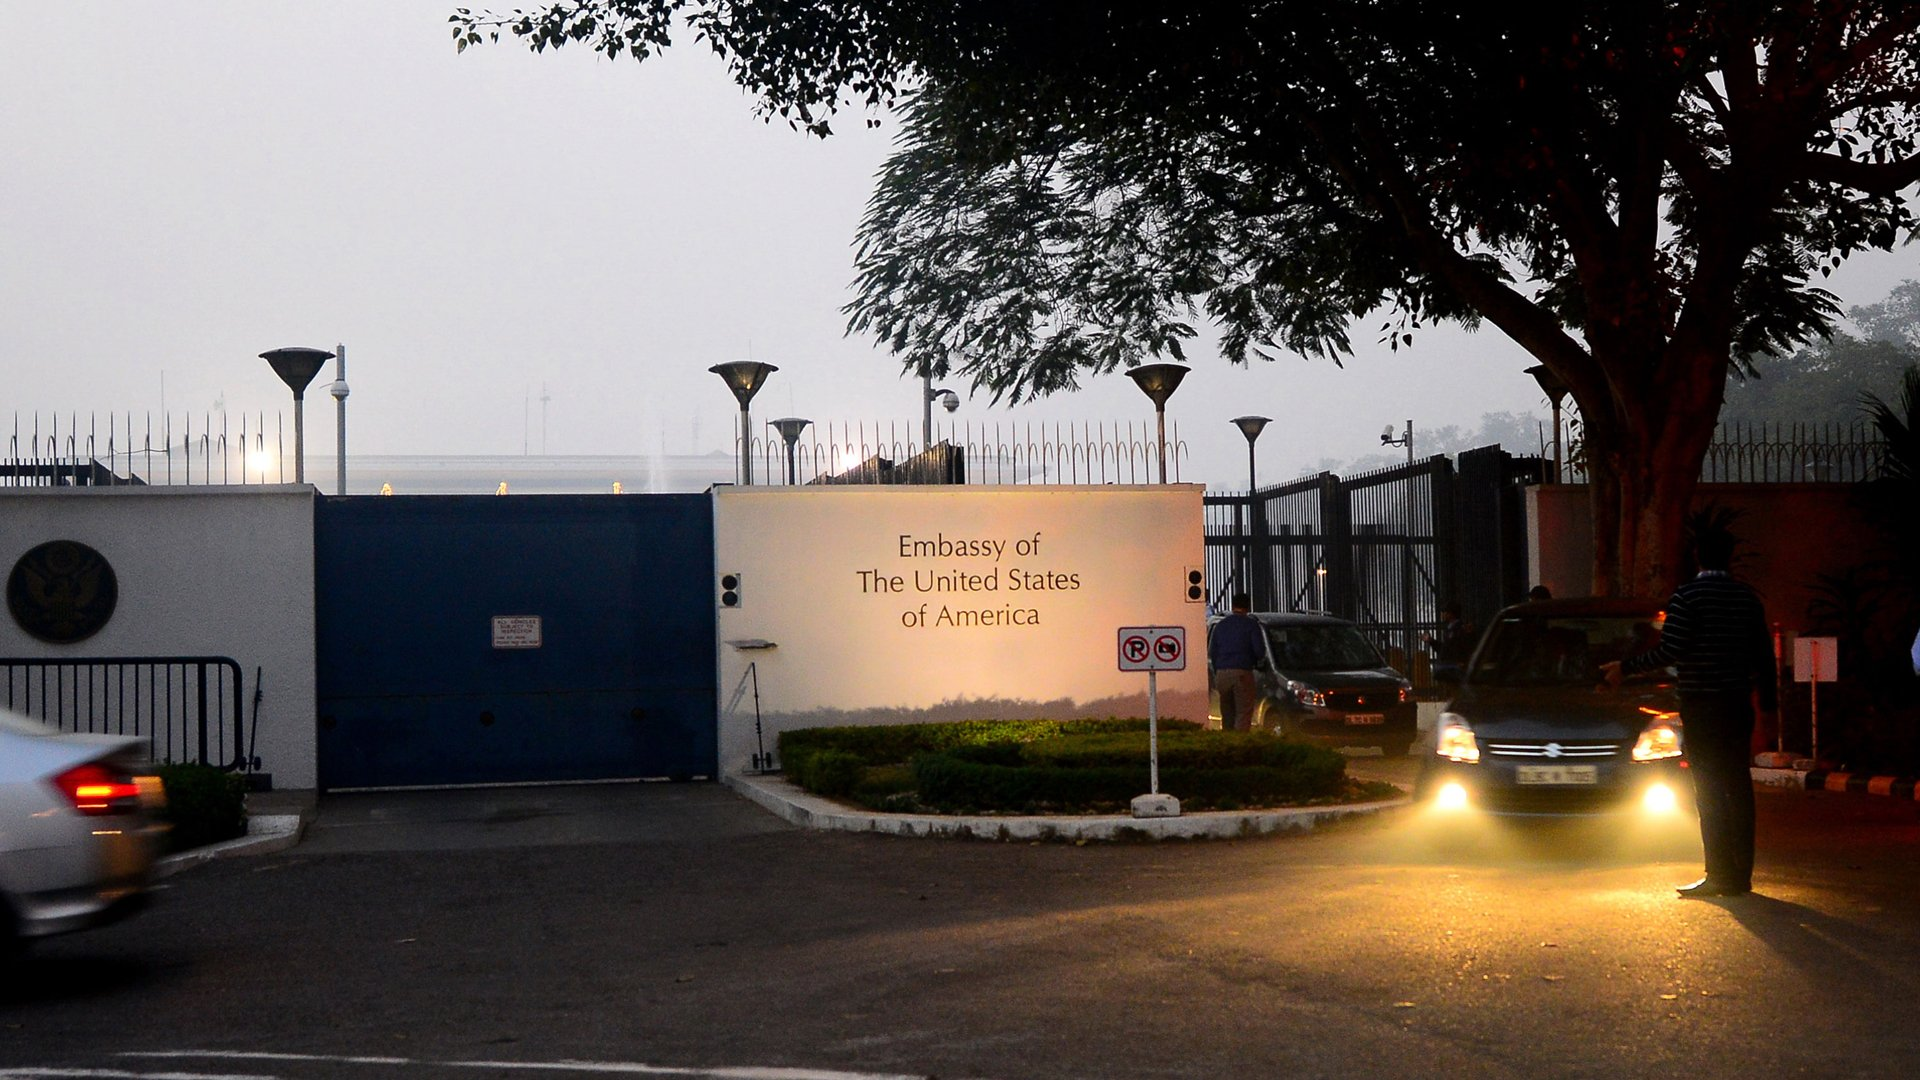 The U.S. embassy in New Delhi, India, is pictured in December 2013. (Credit: Priyanka Parashar / Getty Images)